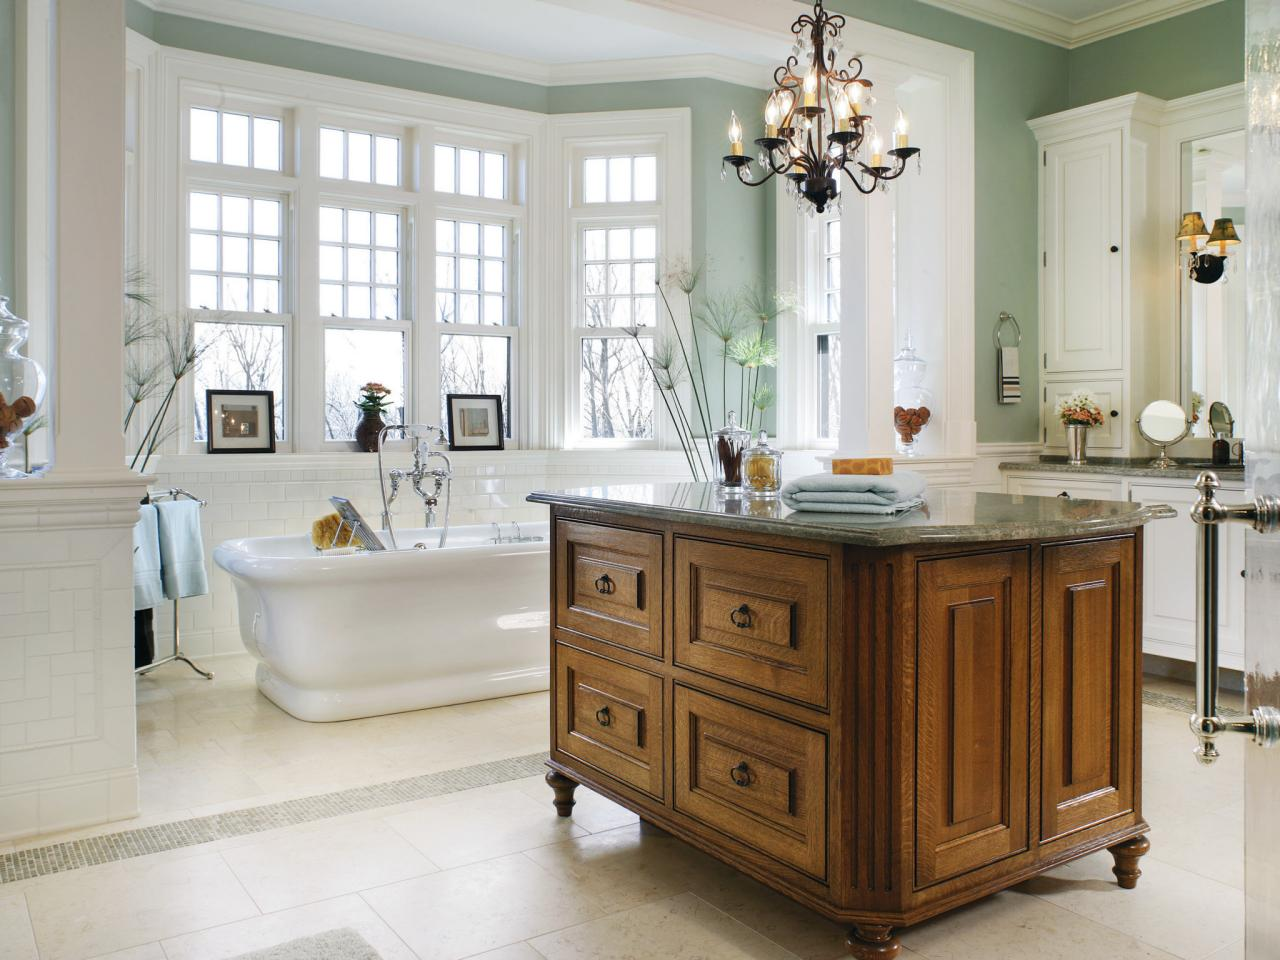 Delicate bathroom Design Ideas Using WoodenCabinet Under Vintage Chandelier